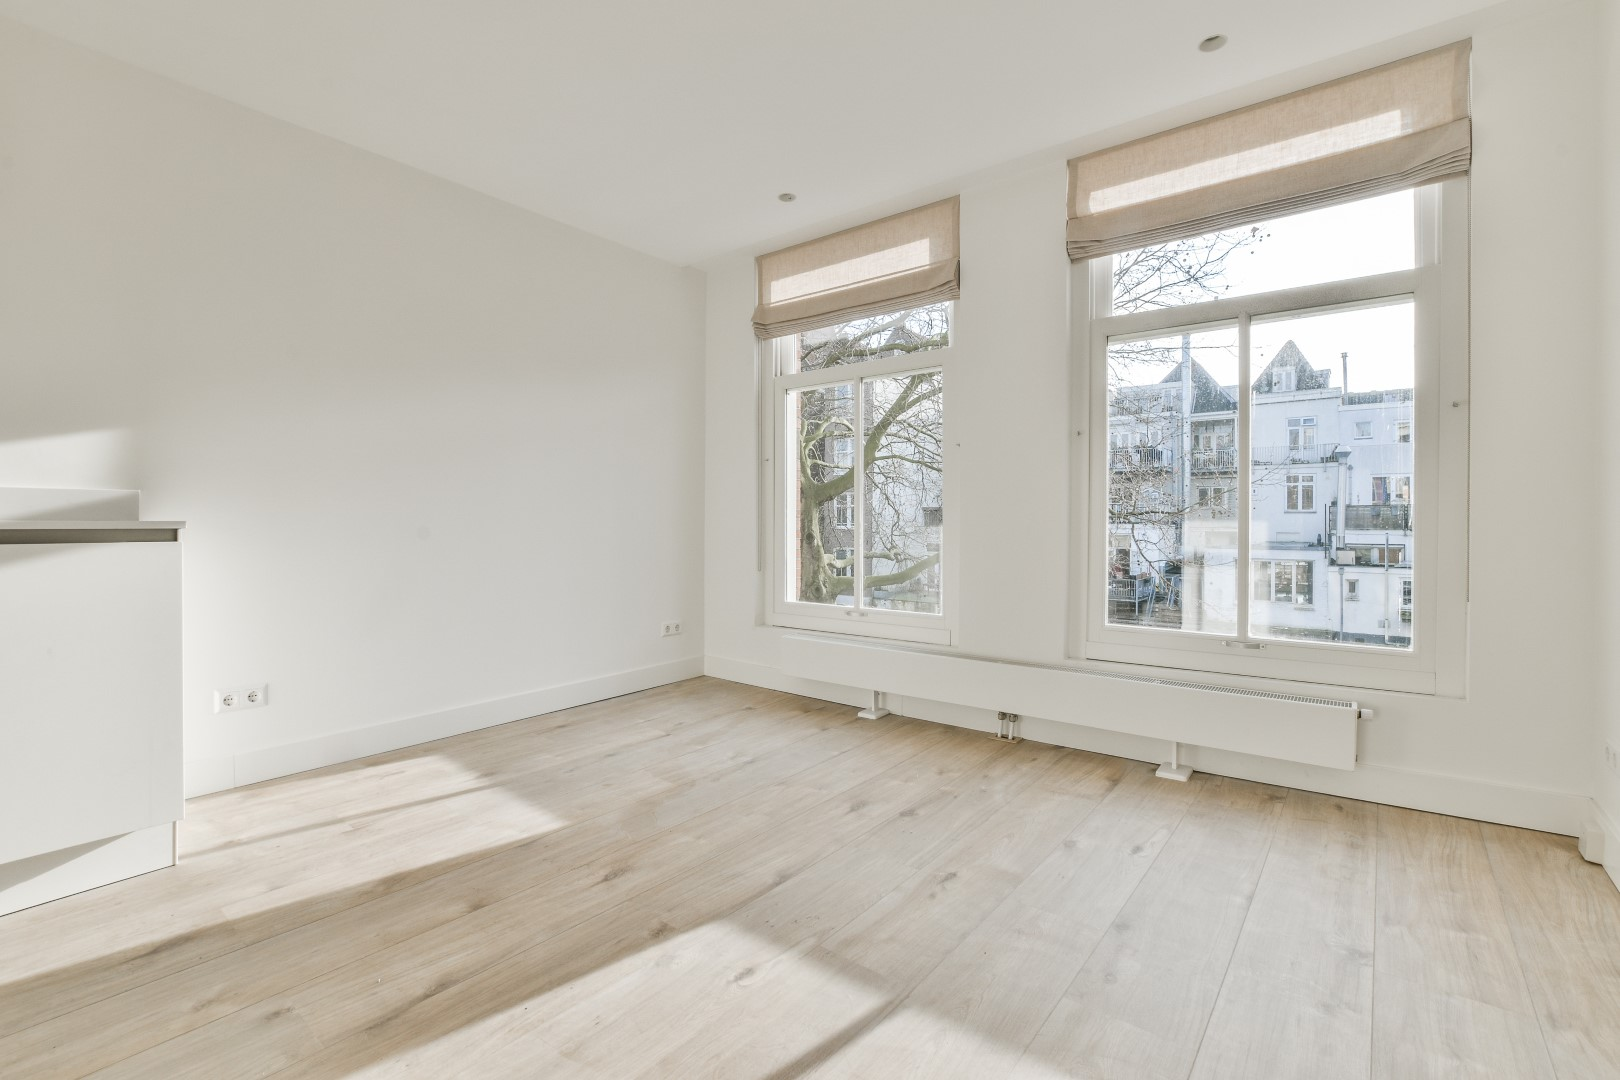 Lijnbaansgracht 322 I 1017 XA, Amsterdam, Noord-Holland Nederland, 1 Bedroom Bedrooms, ,1 BathroomBathrooms,Apartment,For Rent,Lijnbaansgracht,1,1506